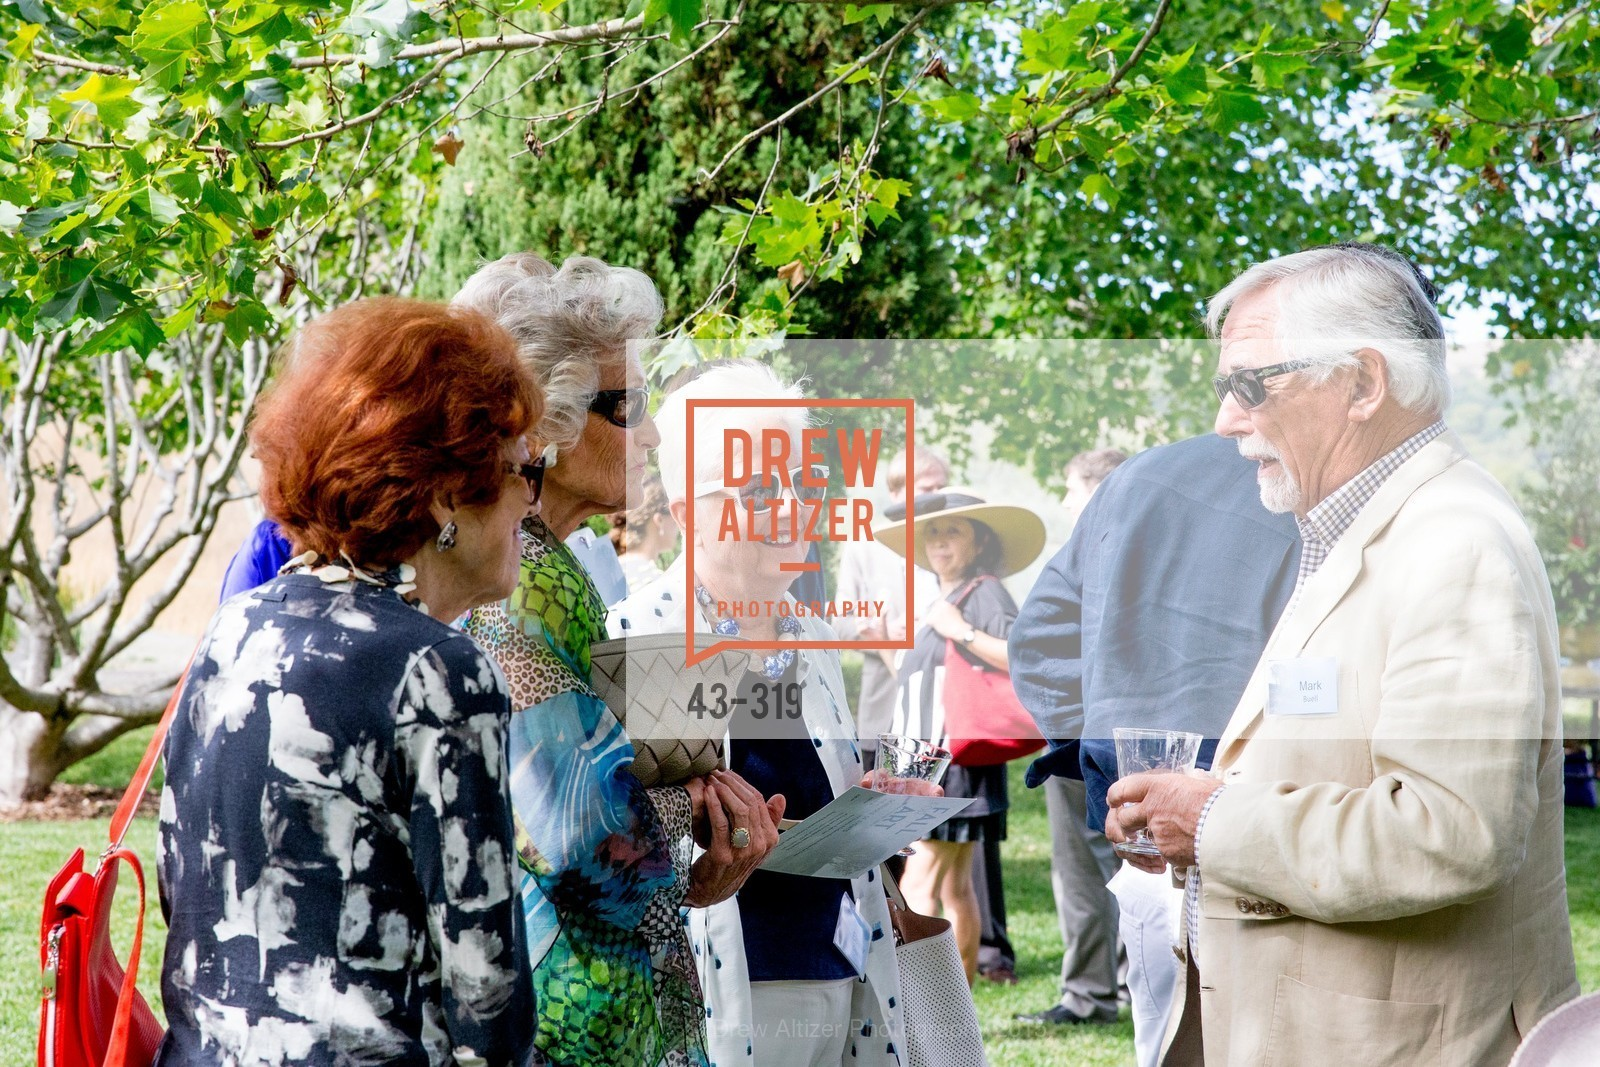 Robbie Dean, Molly Chappellet, Eleanor Coppola, Mark Buell, Fall for Art: ODC at McEvoy Ranch, McEvoy Ranch. 5935 Red Hill Road, September 27th, 2015,Drew Altizer, Drew Altizer Photography, full-service agency, private events, San Francisco photographer, photographer california